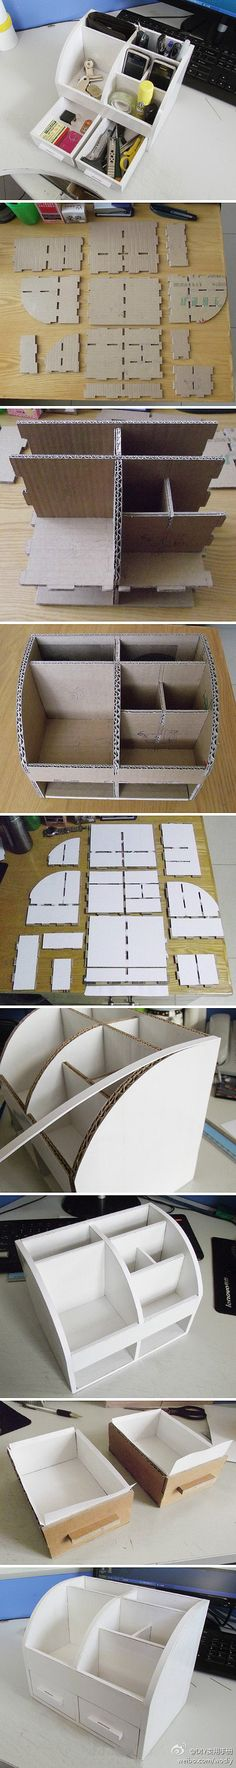 Faire un organiseur de bureau en carton / DIY : building an office organizer from cardboard